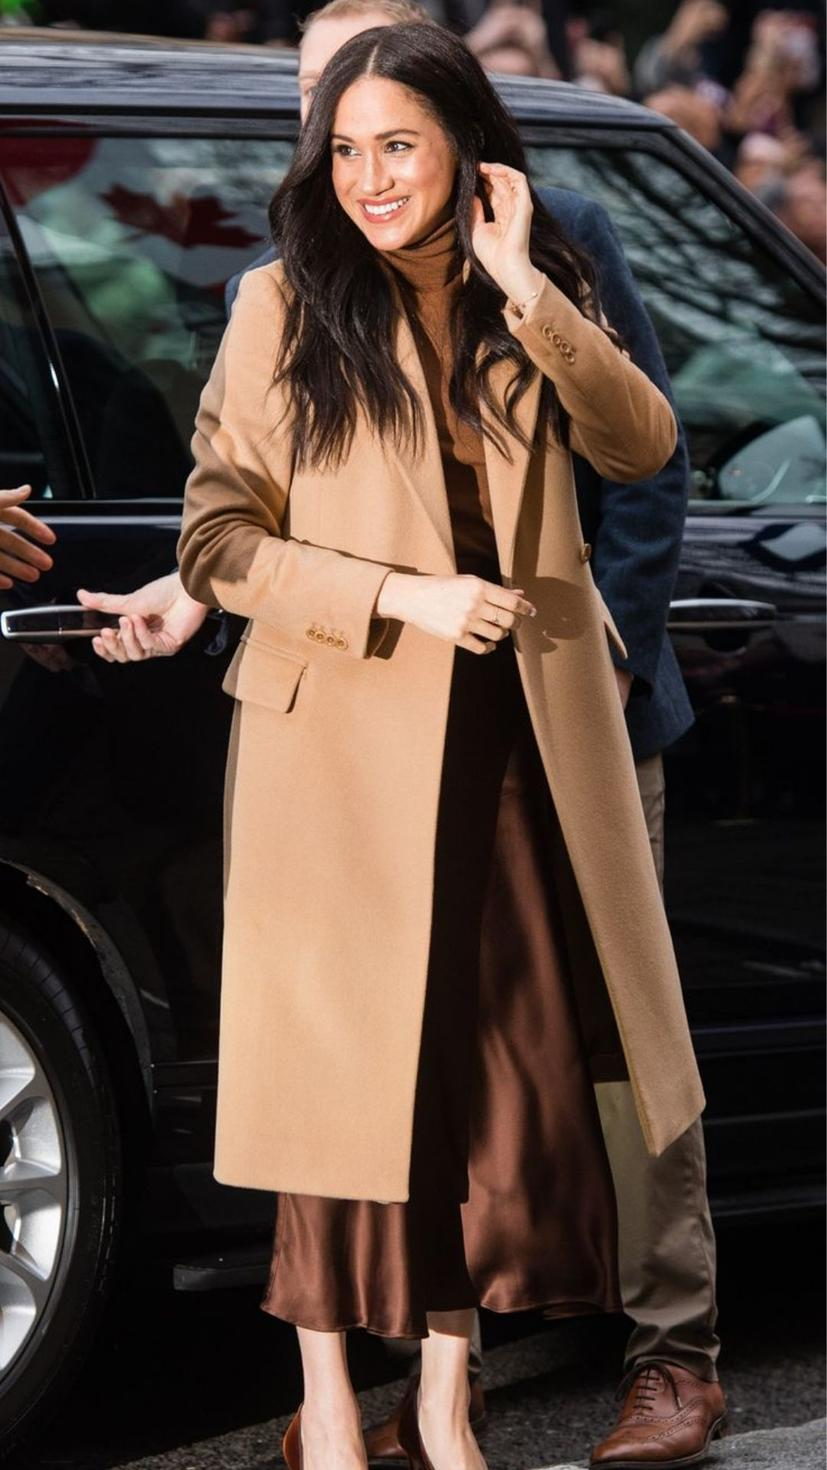 Meghan Markle steps out in a brown camel coat from Reiss